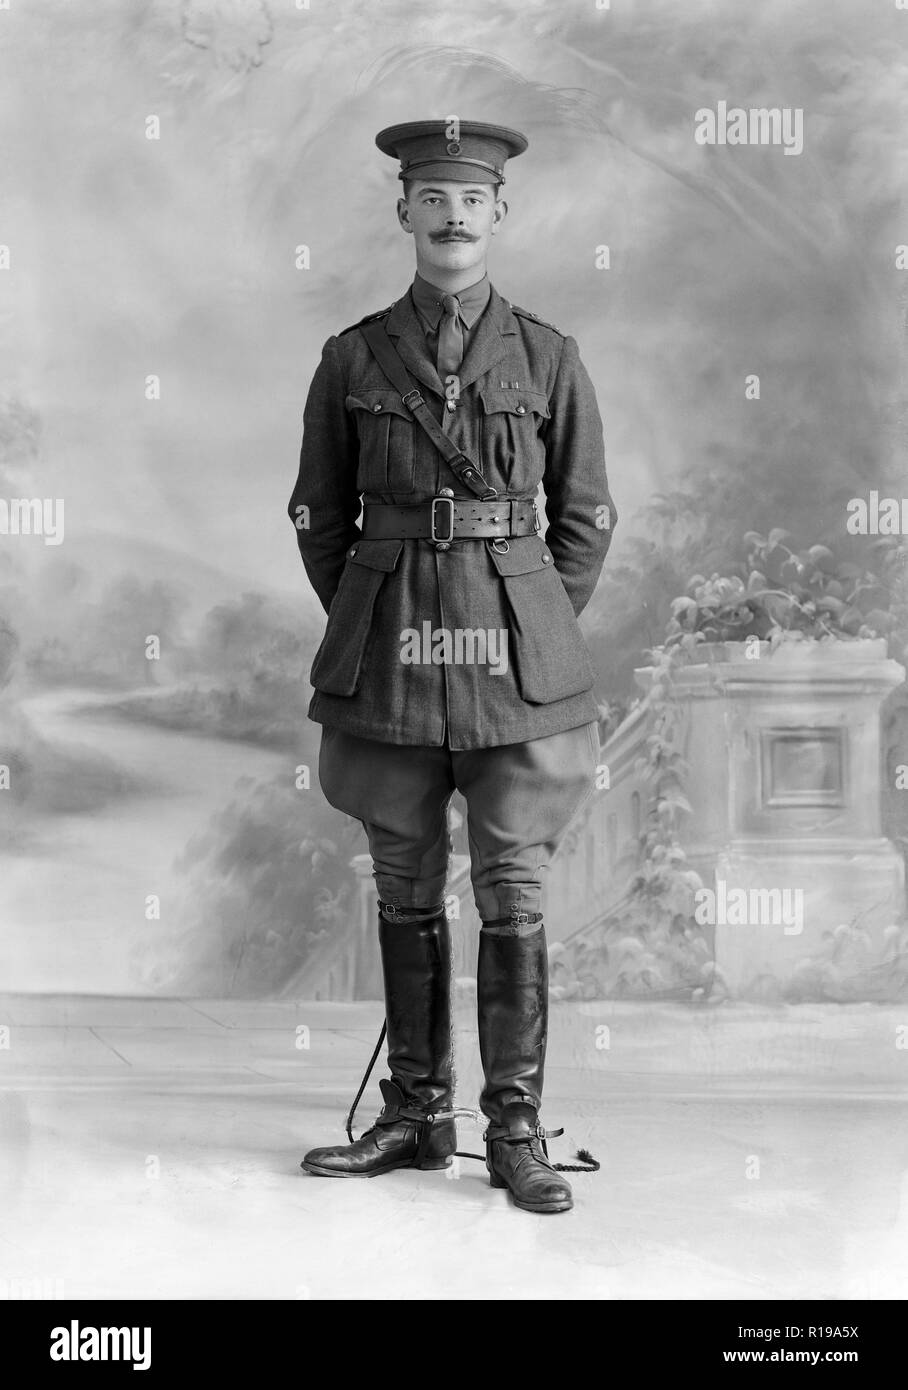 Lieutenant H. C. S. Combe of the Life Guards, a British Army regiment. Vintage black and white photograph taken during World War I in the famous Bassano studio in London. Lt. Combe is holding a horse whip whilst posing. - Stock Image